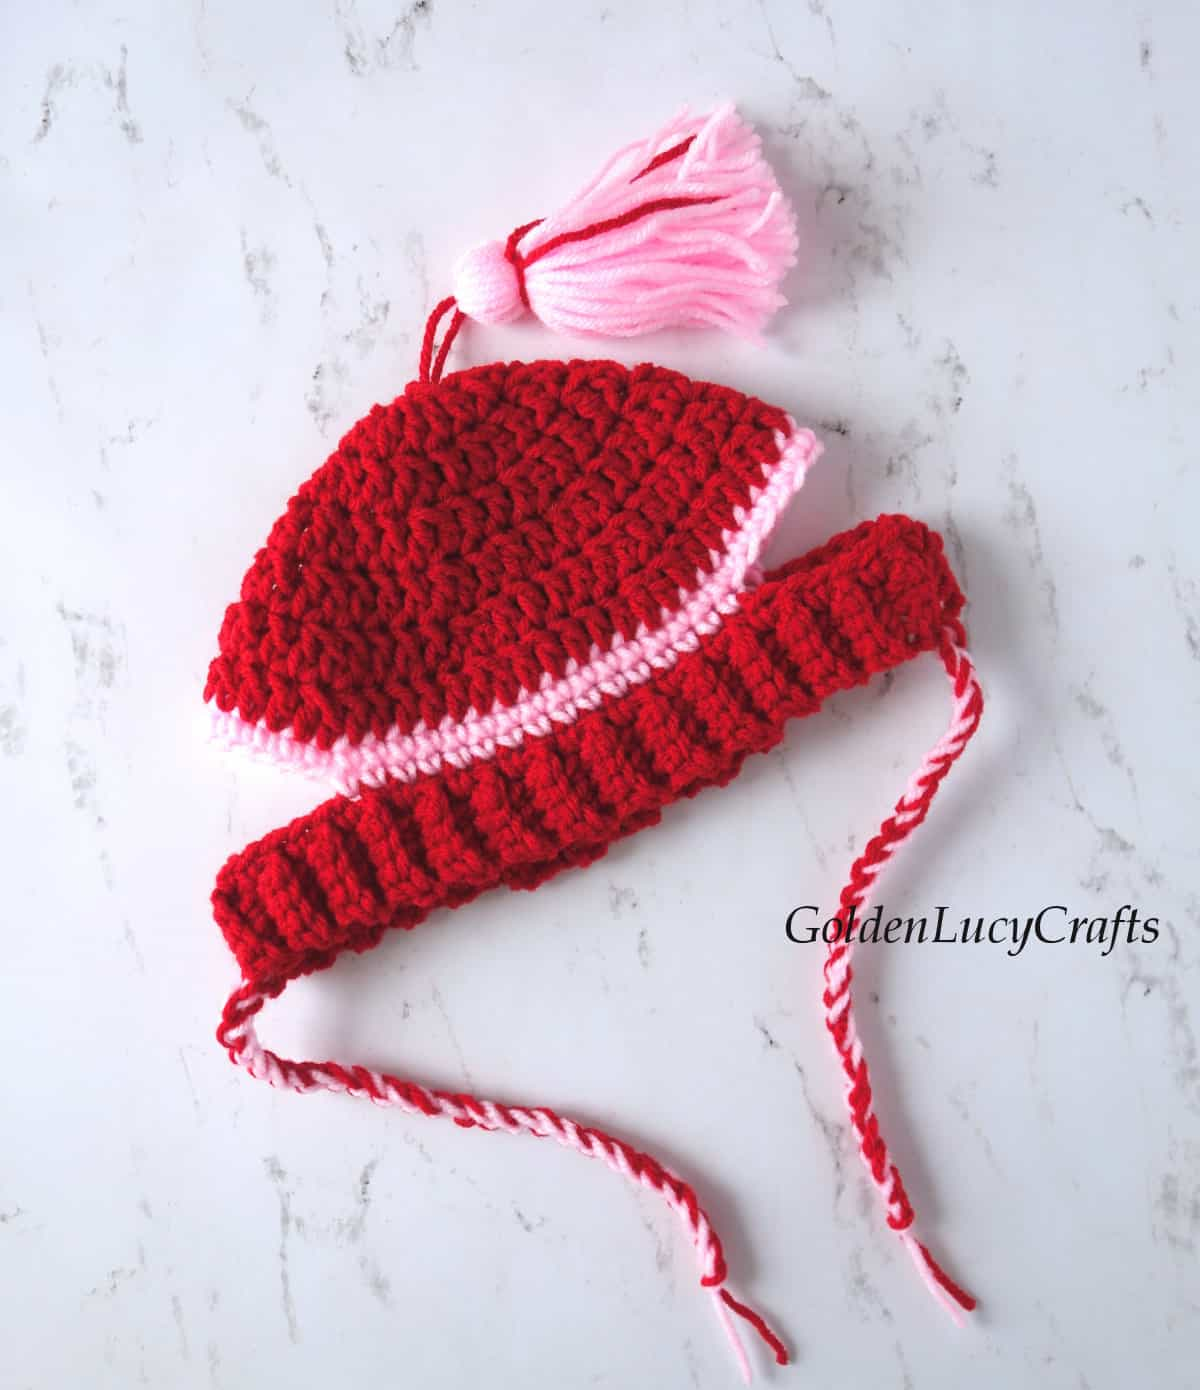 Crochet hat for a dog in red and pink colors.